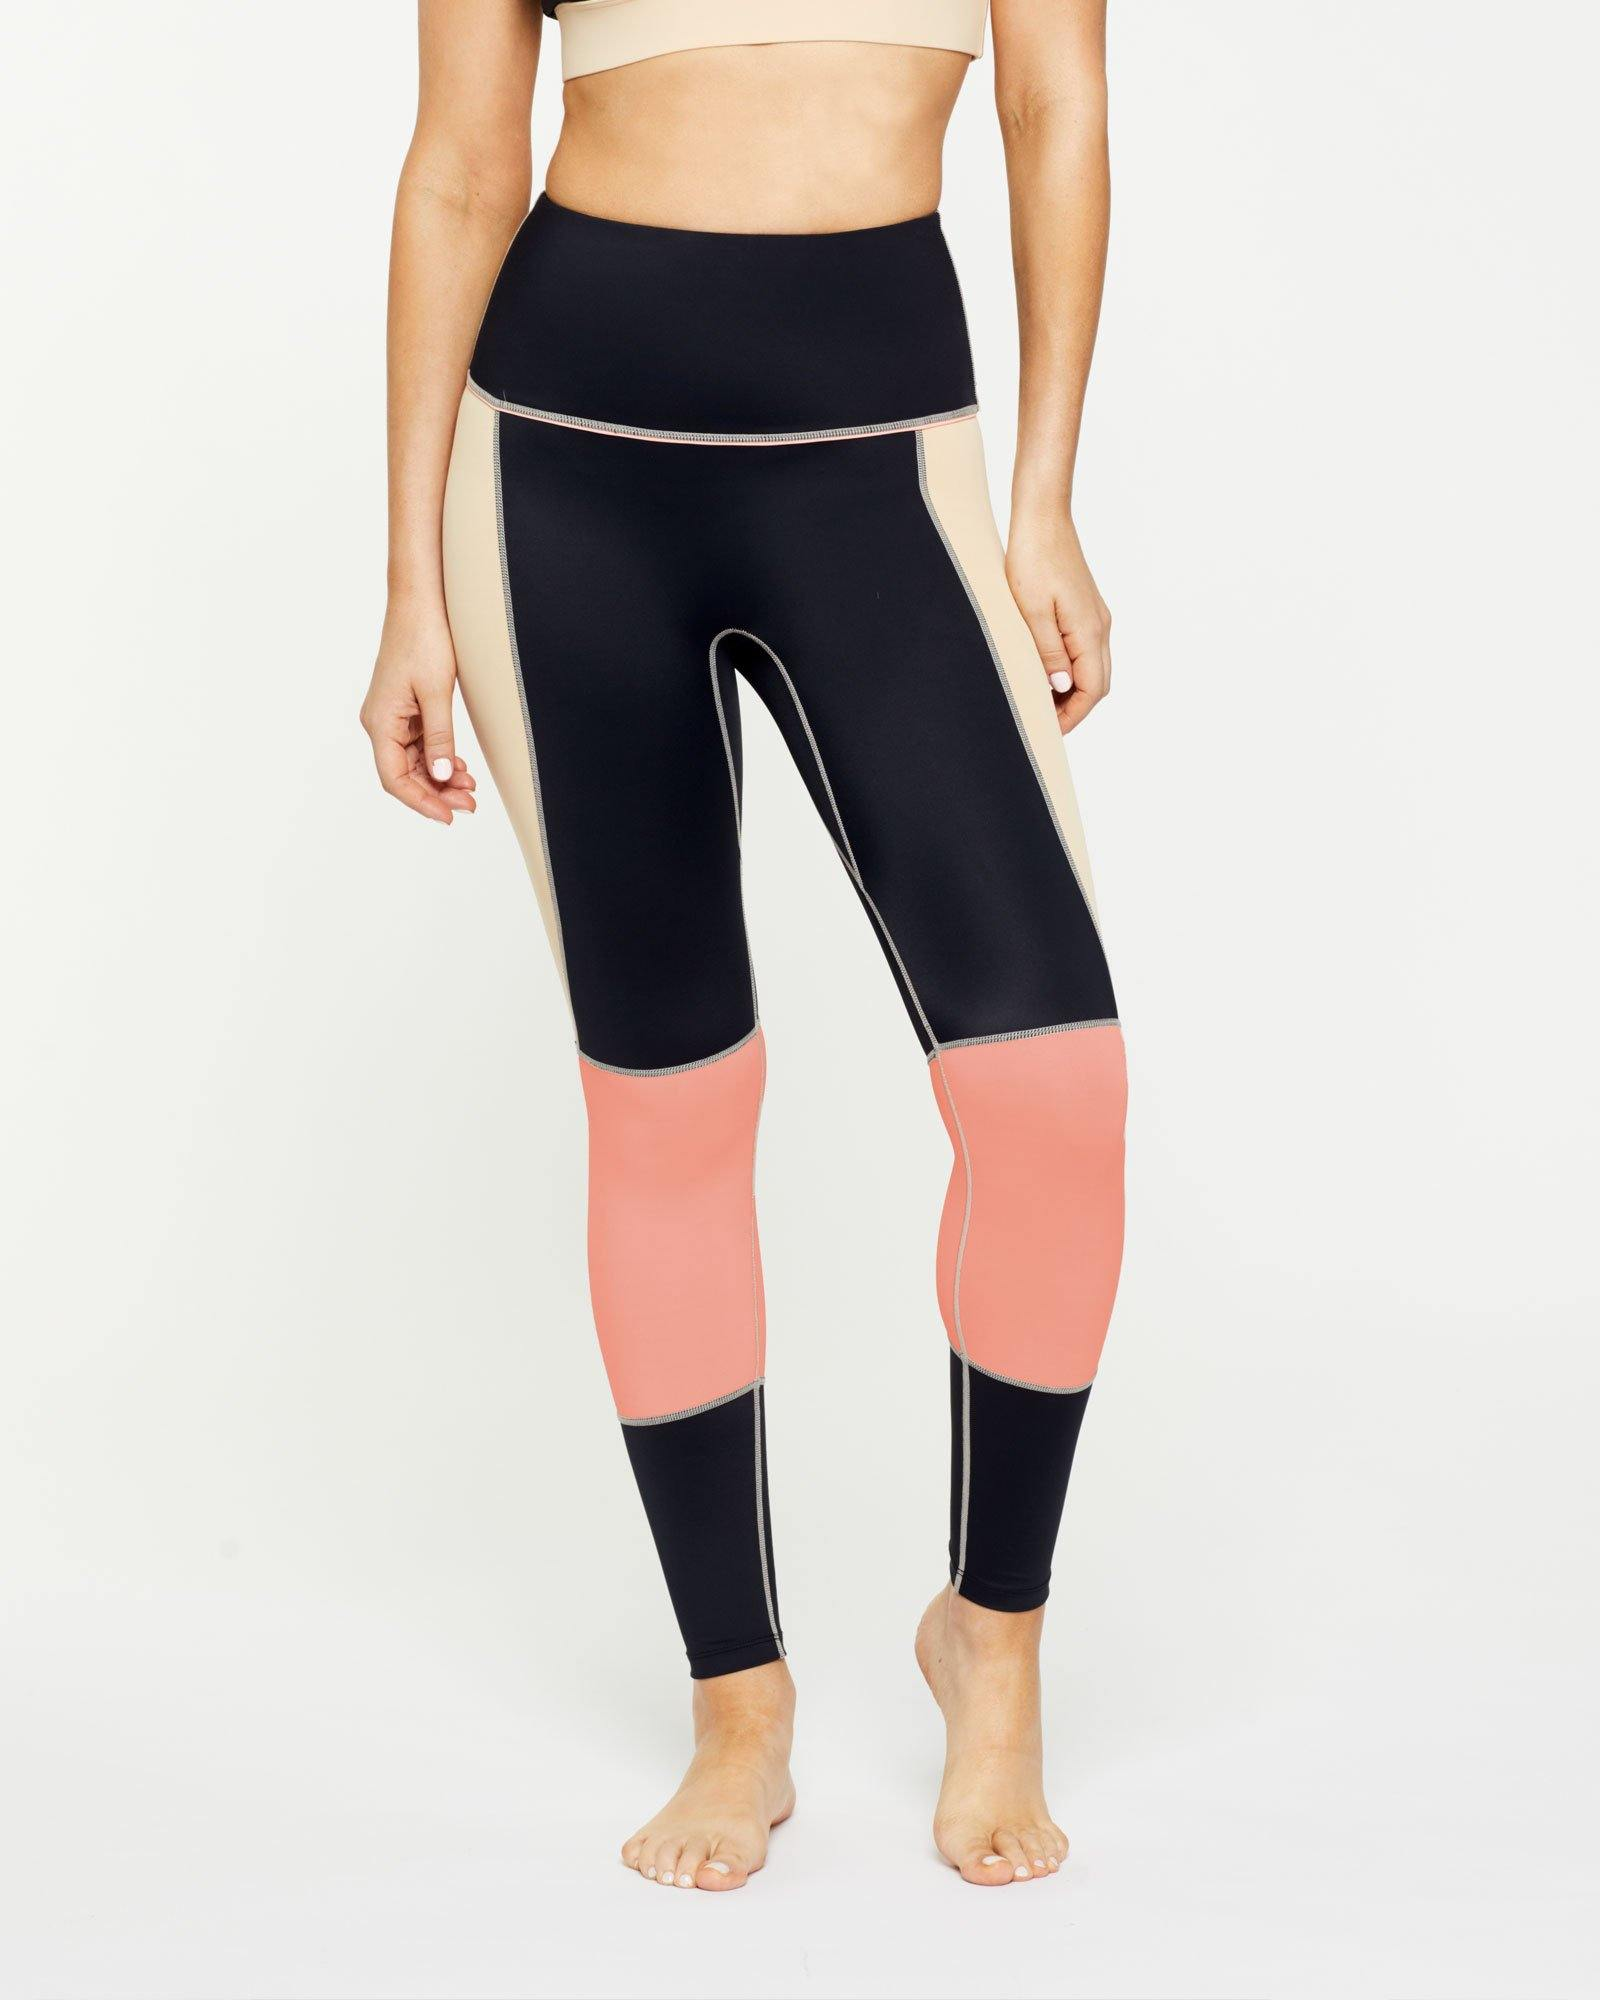 Warrior GRACILIS 7/8 High waisted LEGGING BLACK WITH CONTRAST PANELS, FRONT VIEW